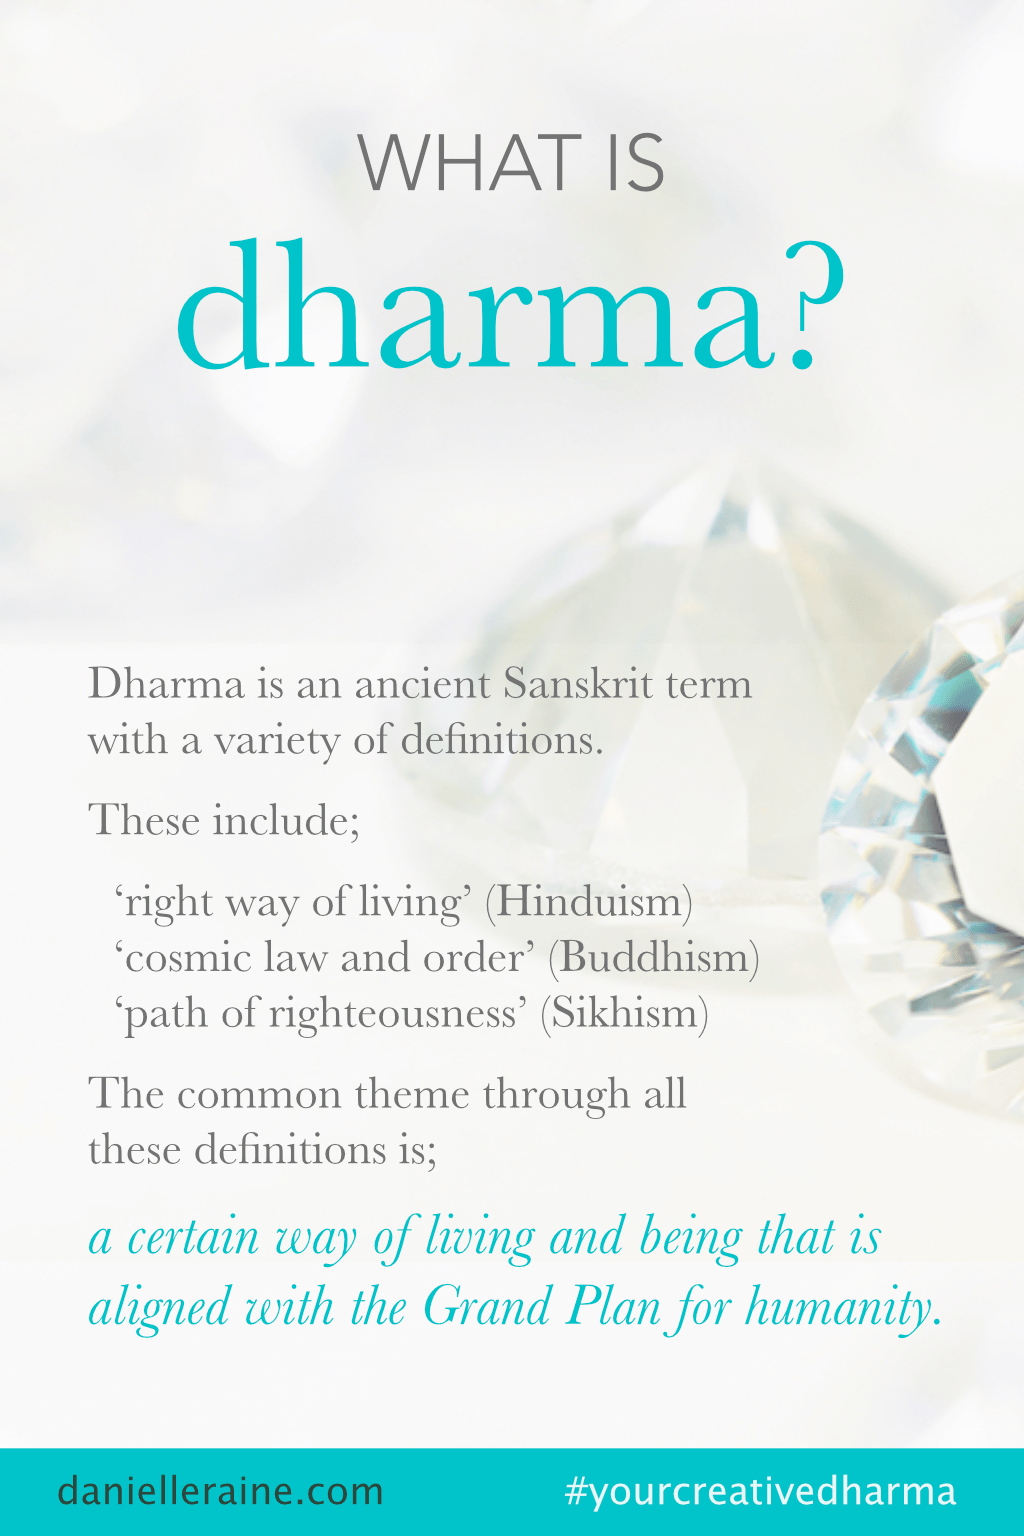 what is dharma blog post definition sanskrit word